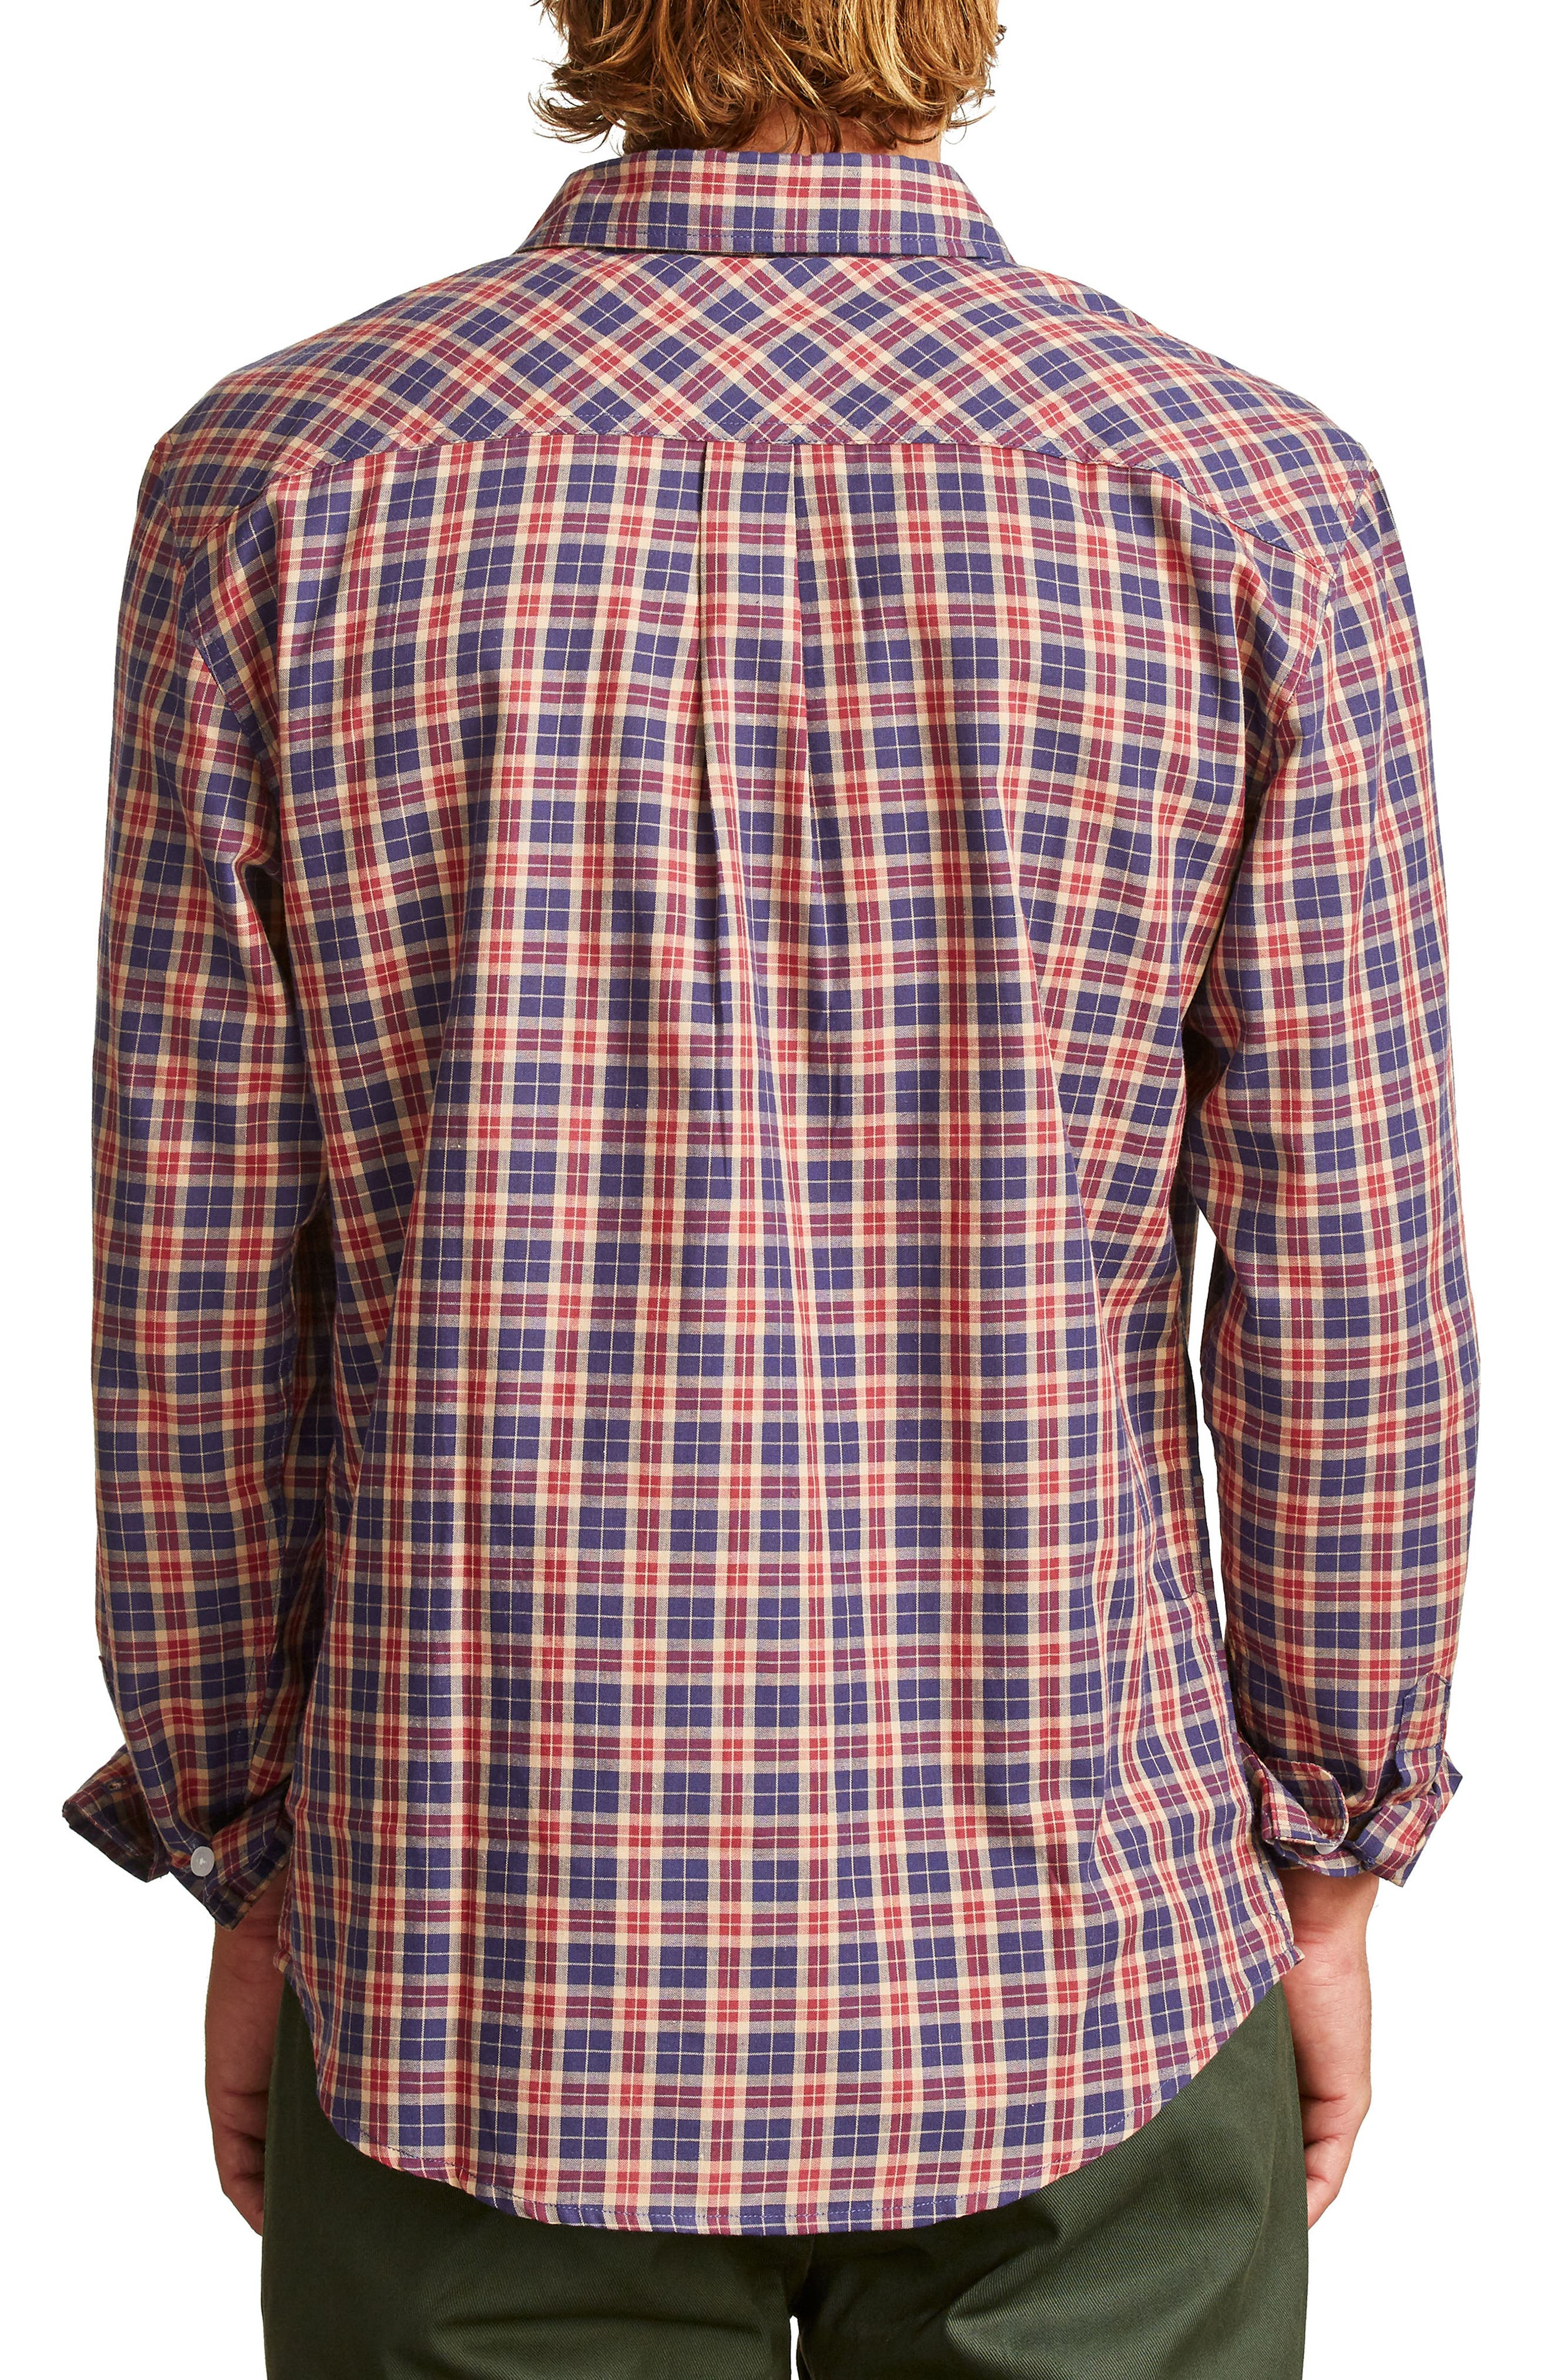 Memphis Woven Shirt,                             Alternate thumbnail 2, color,                             413